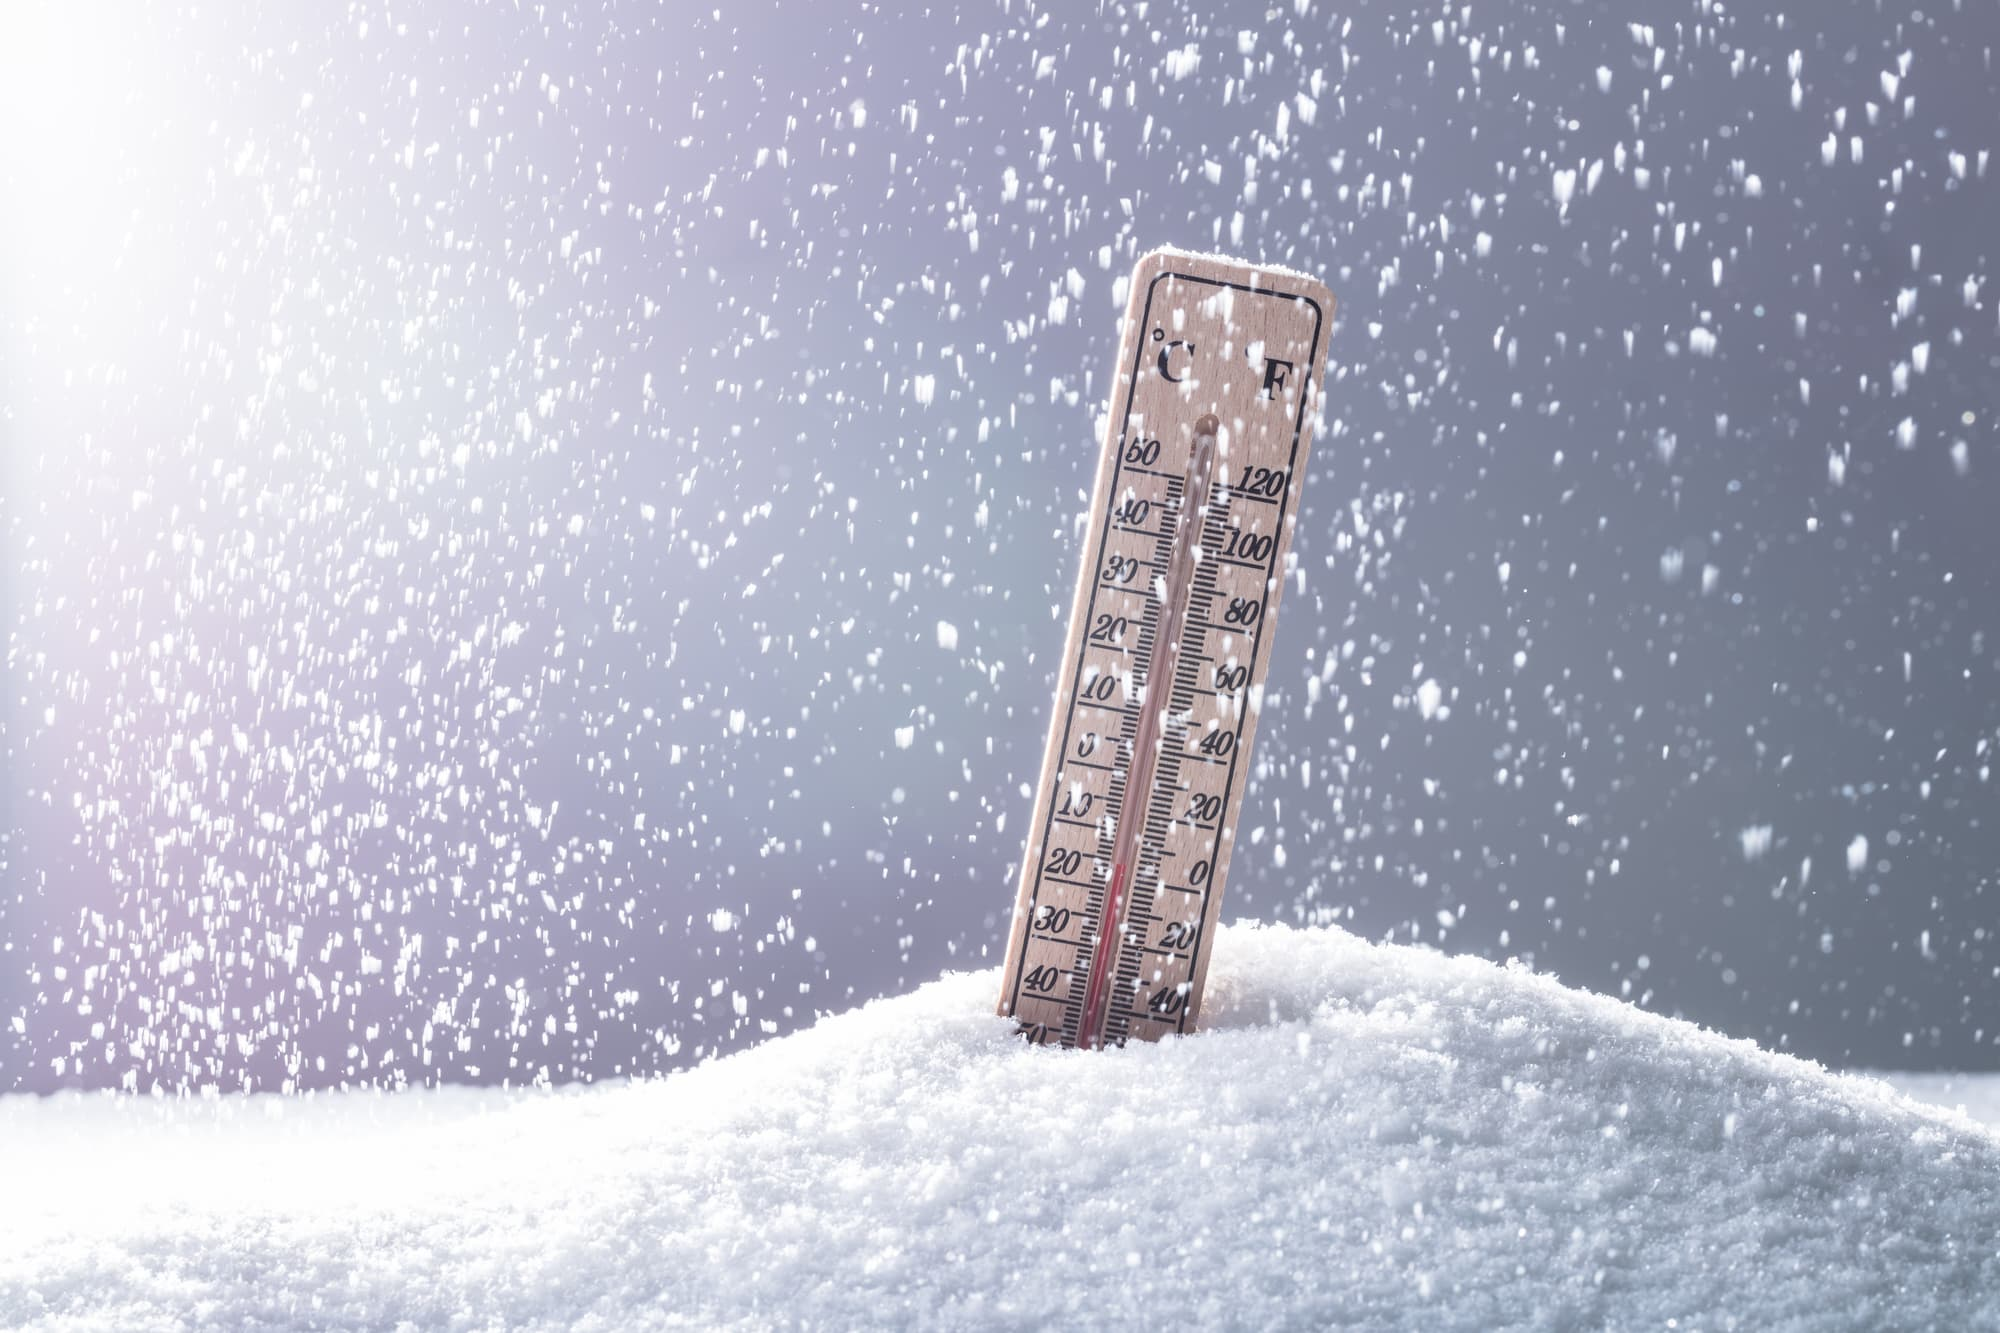 Thermometer On Snow Showing Low Temperature